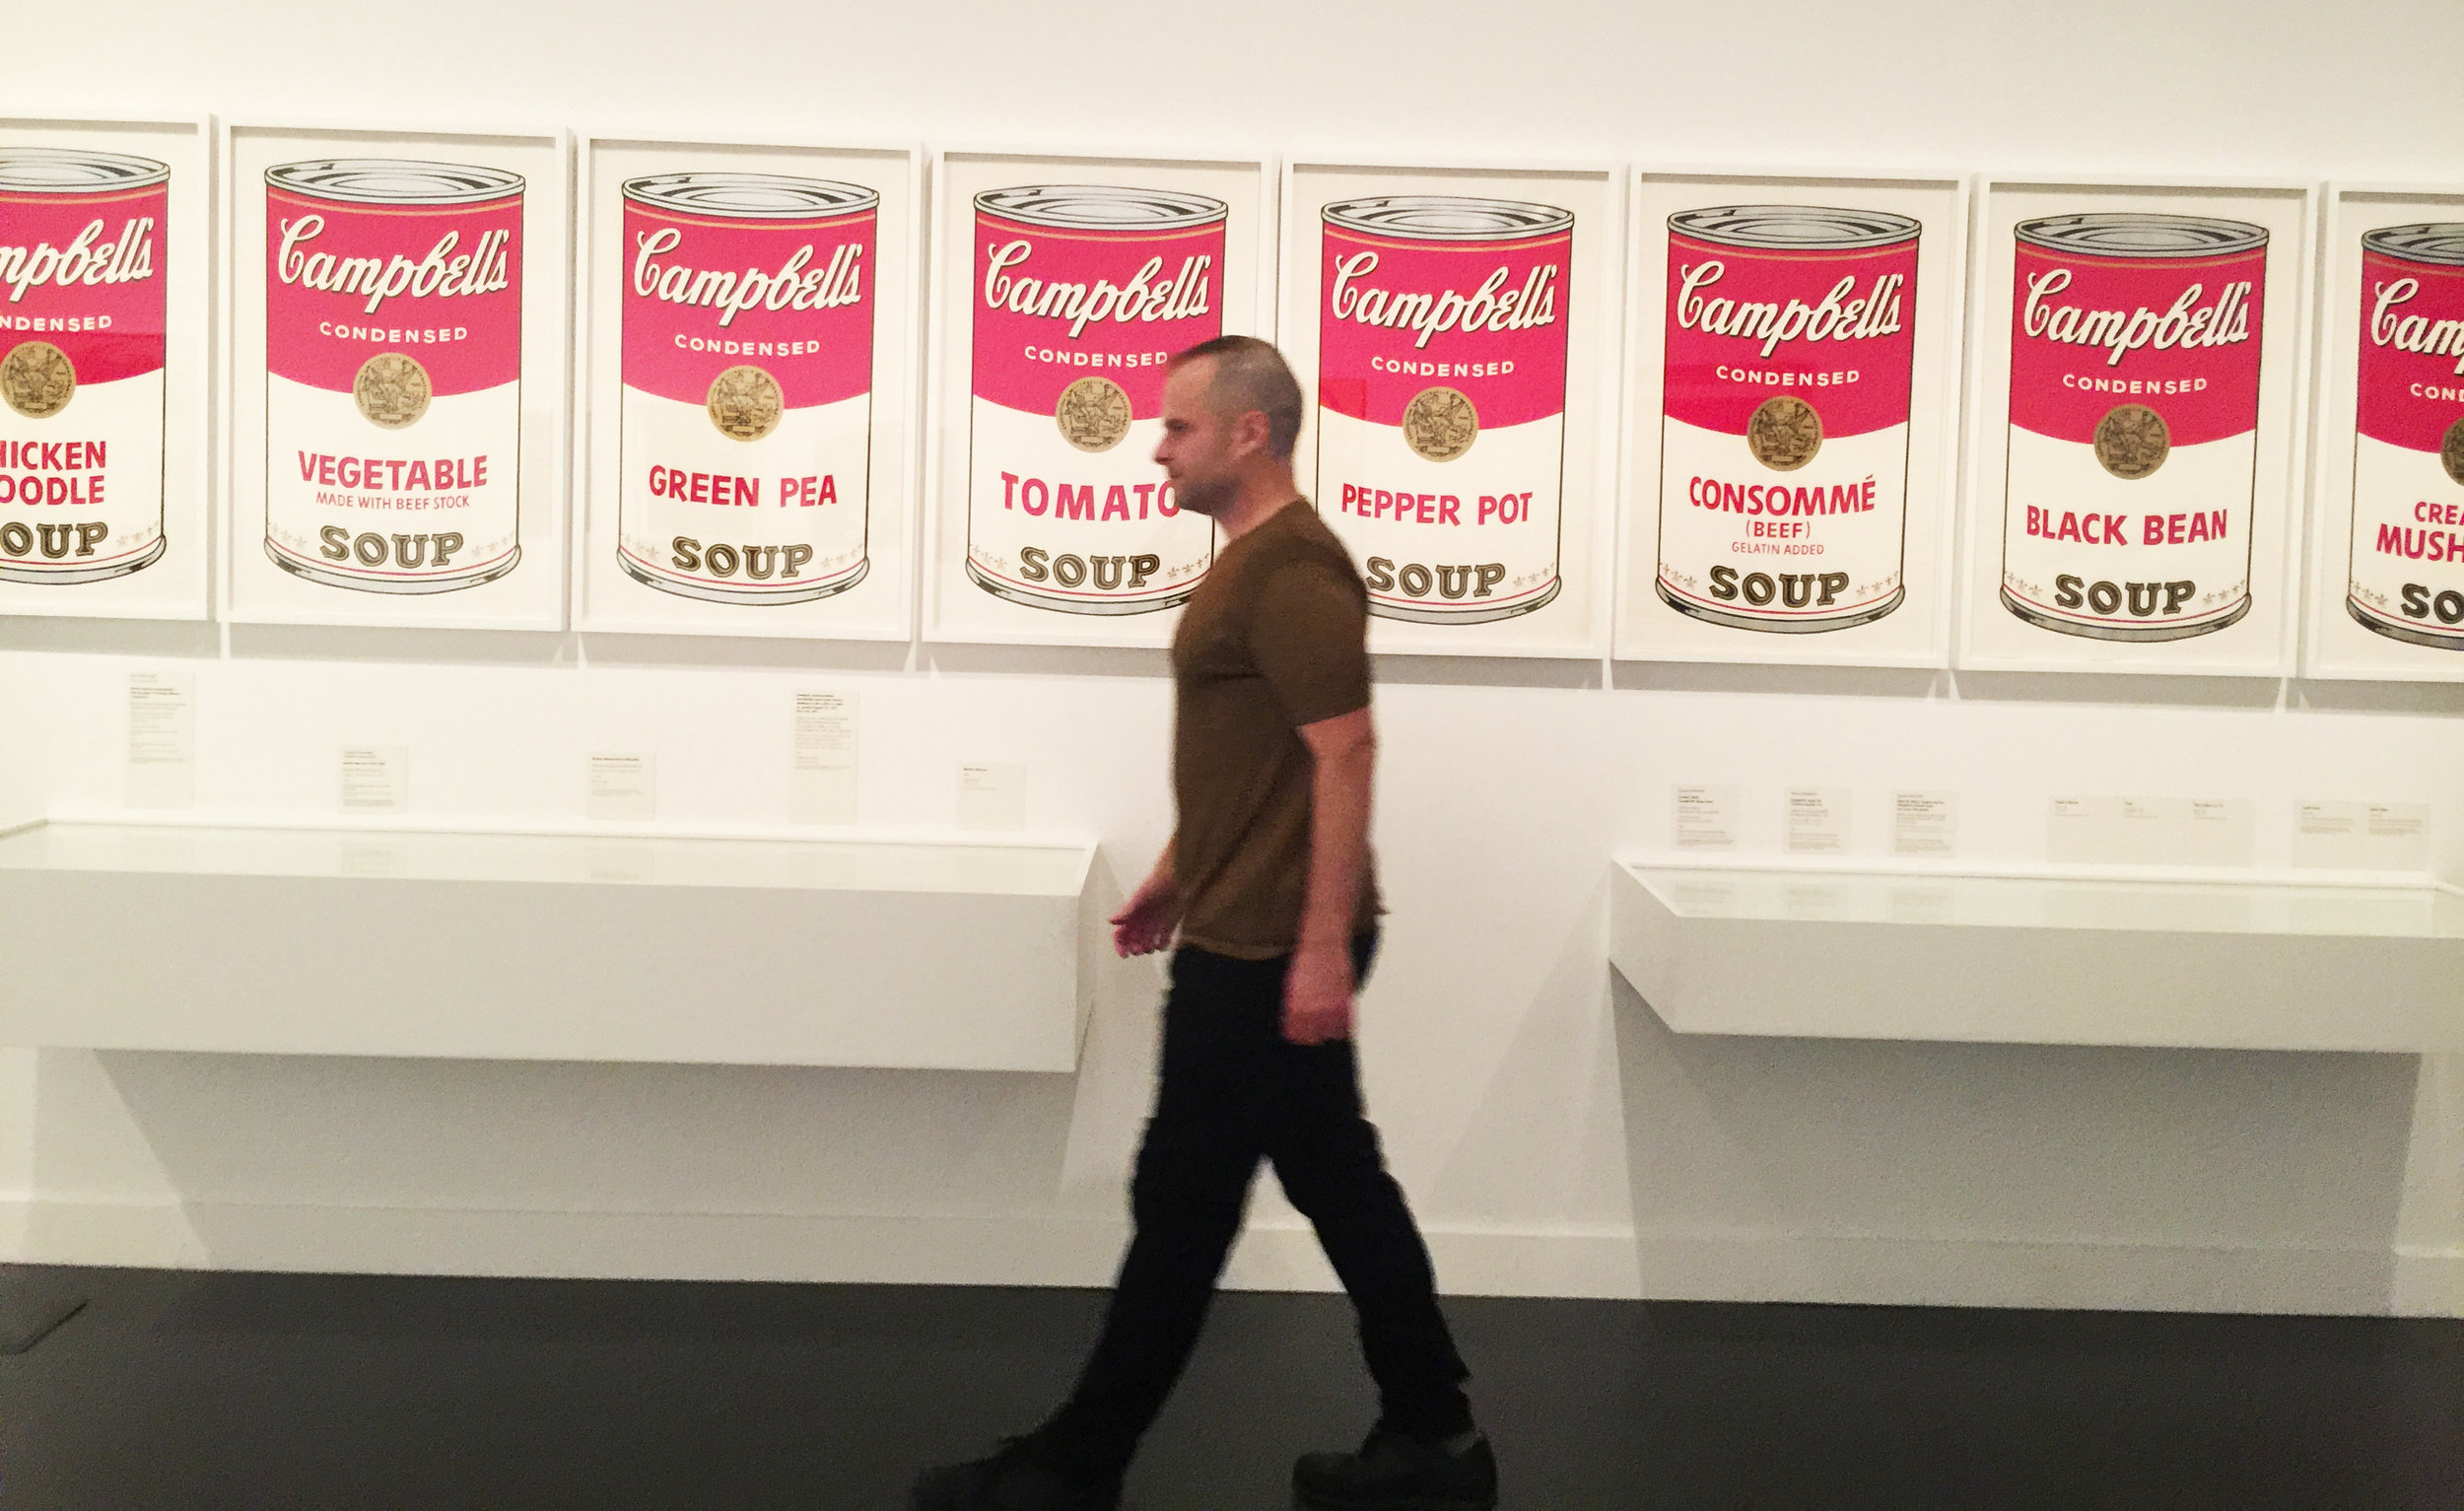 JESSE WAUGH - ANDY WARHOL - Campbell's Soup Cans